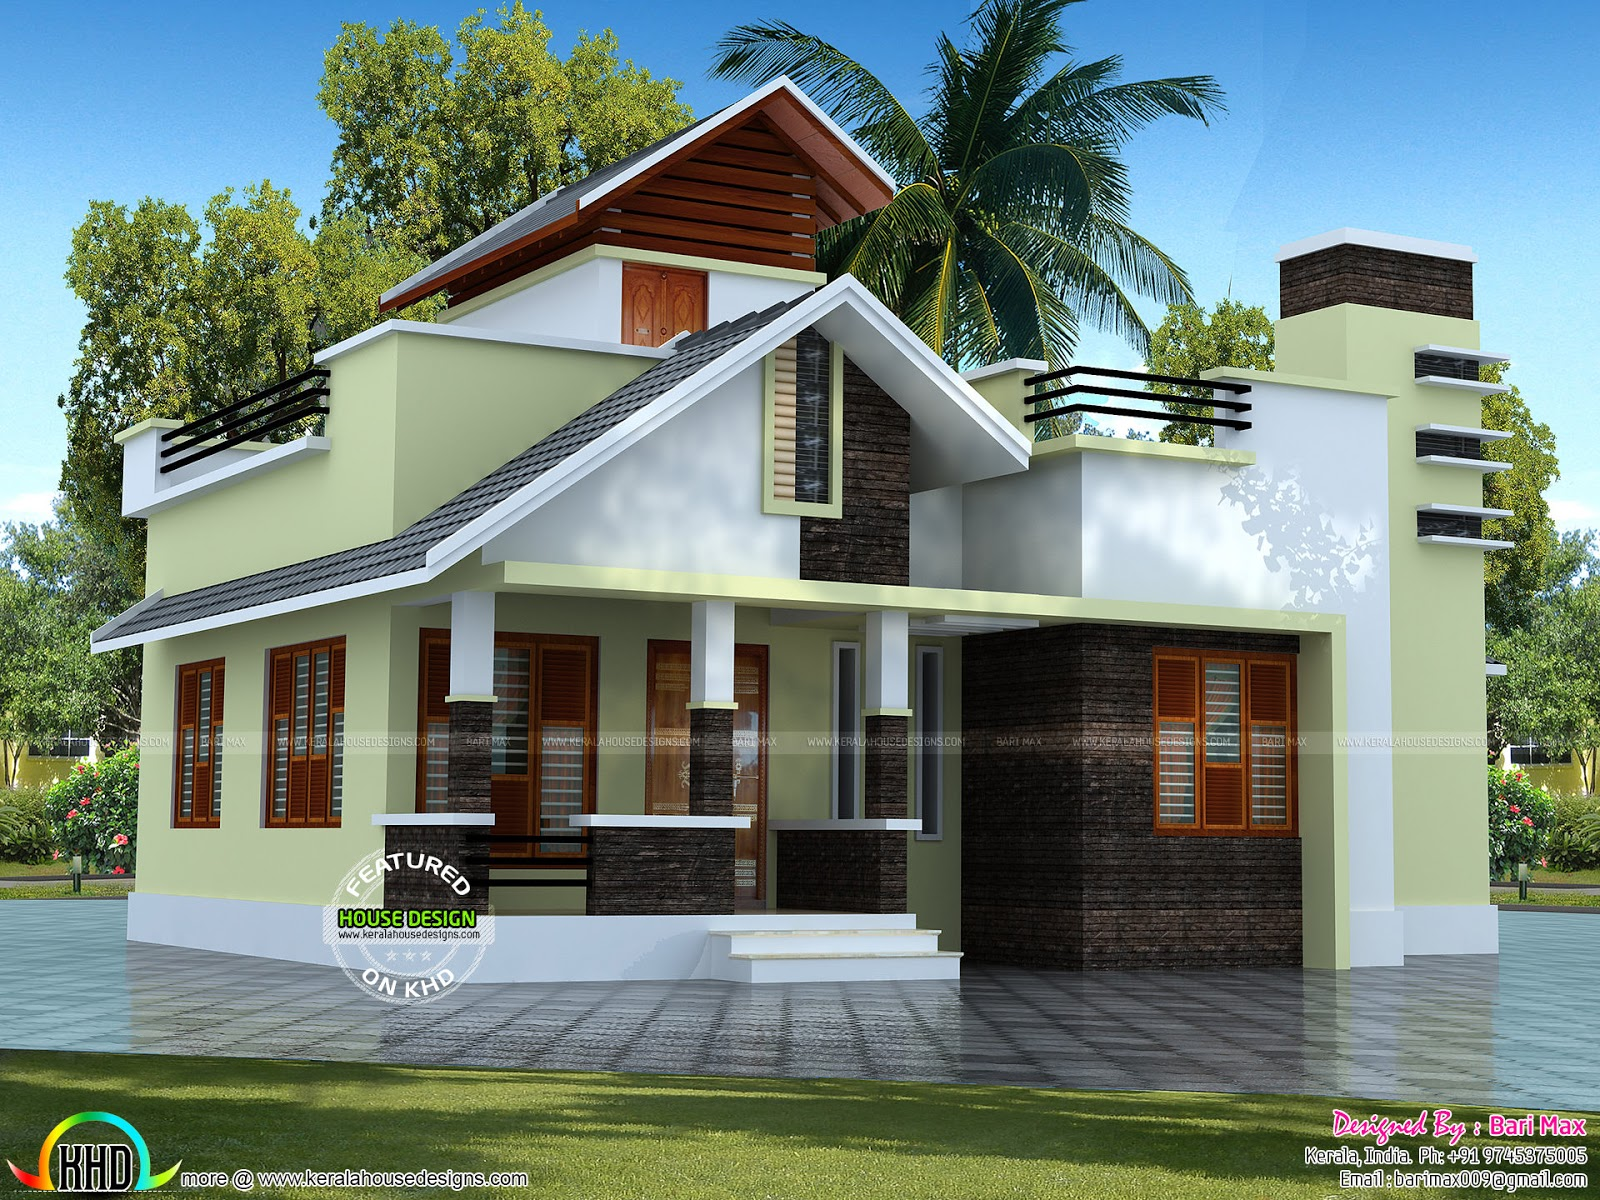 Low Cost Single Floor Home 1050 Sq Ft Kerala Home Design And Floor Plans